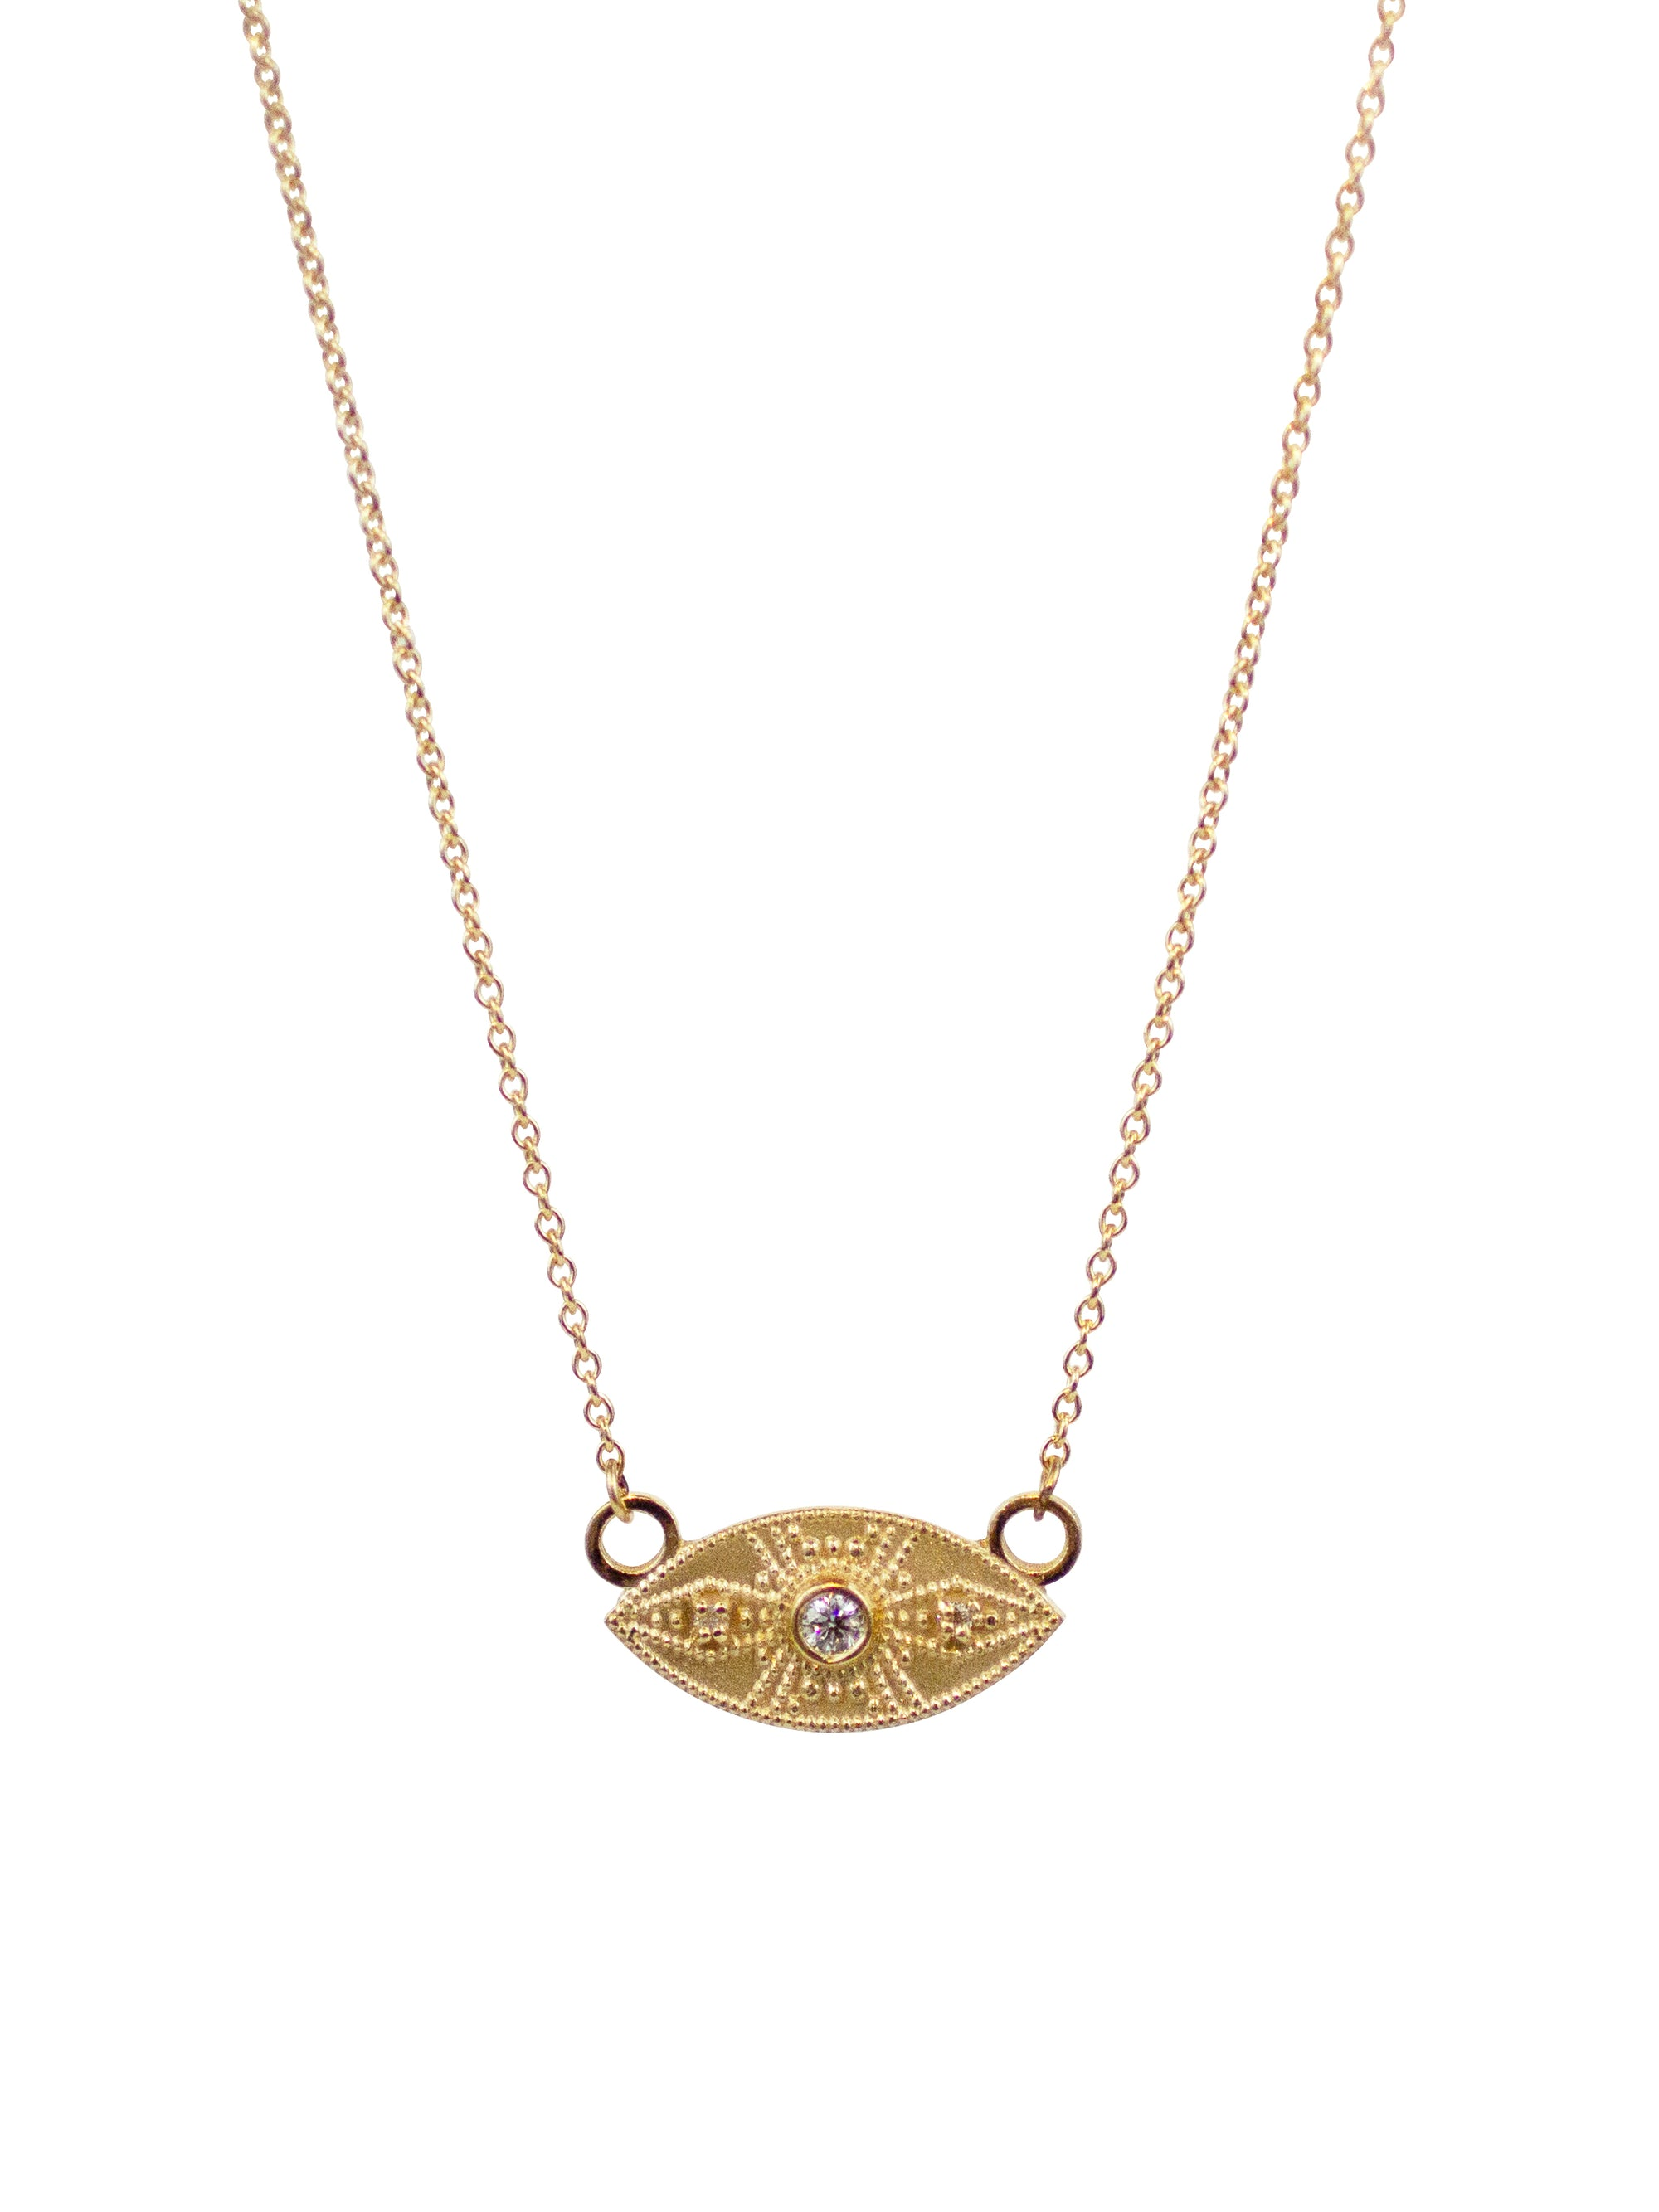 14K Ajna Diamond Necklace